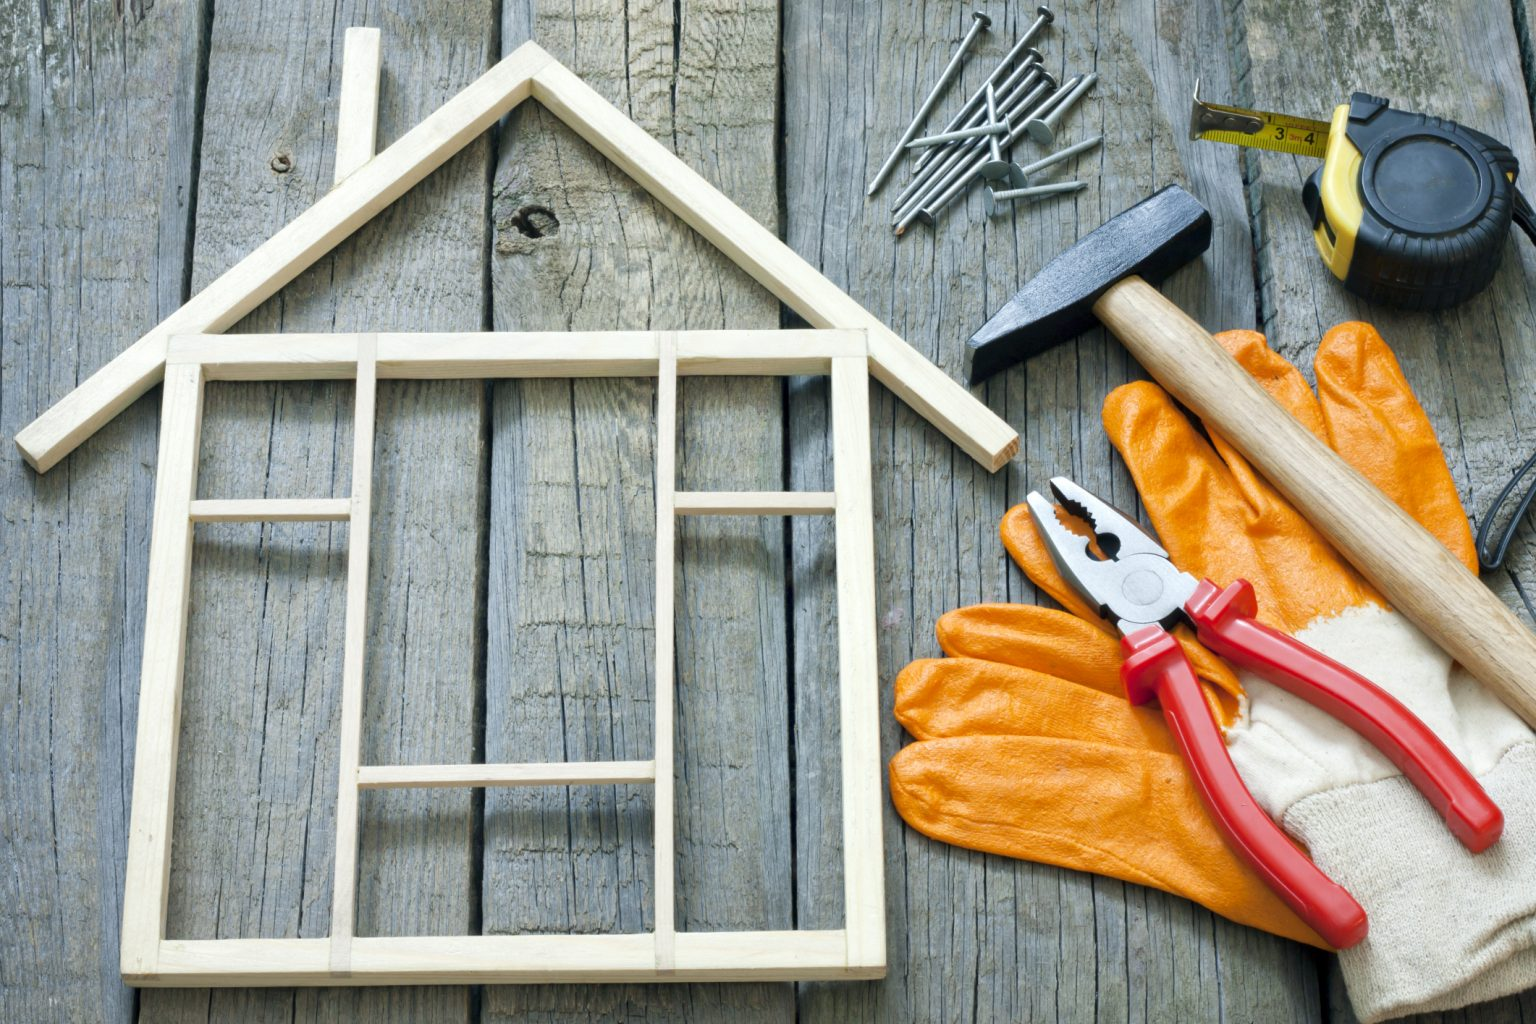 Unique Lifestyle: Tricks to Customize Your Home